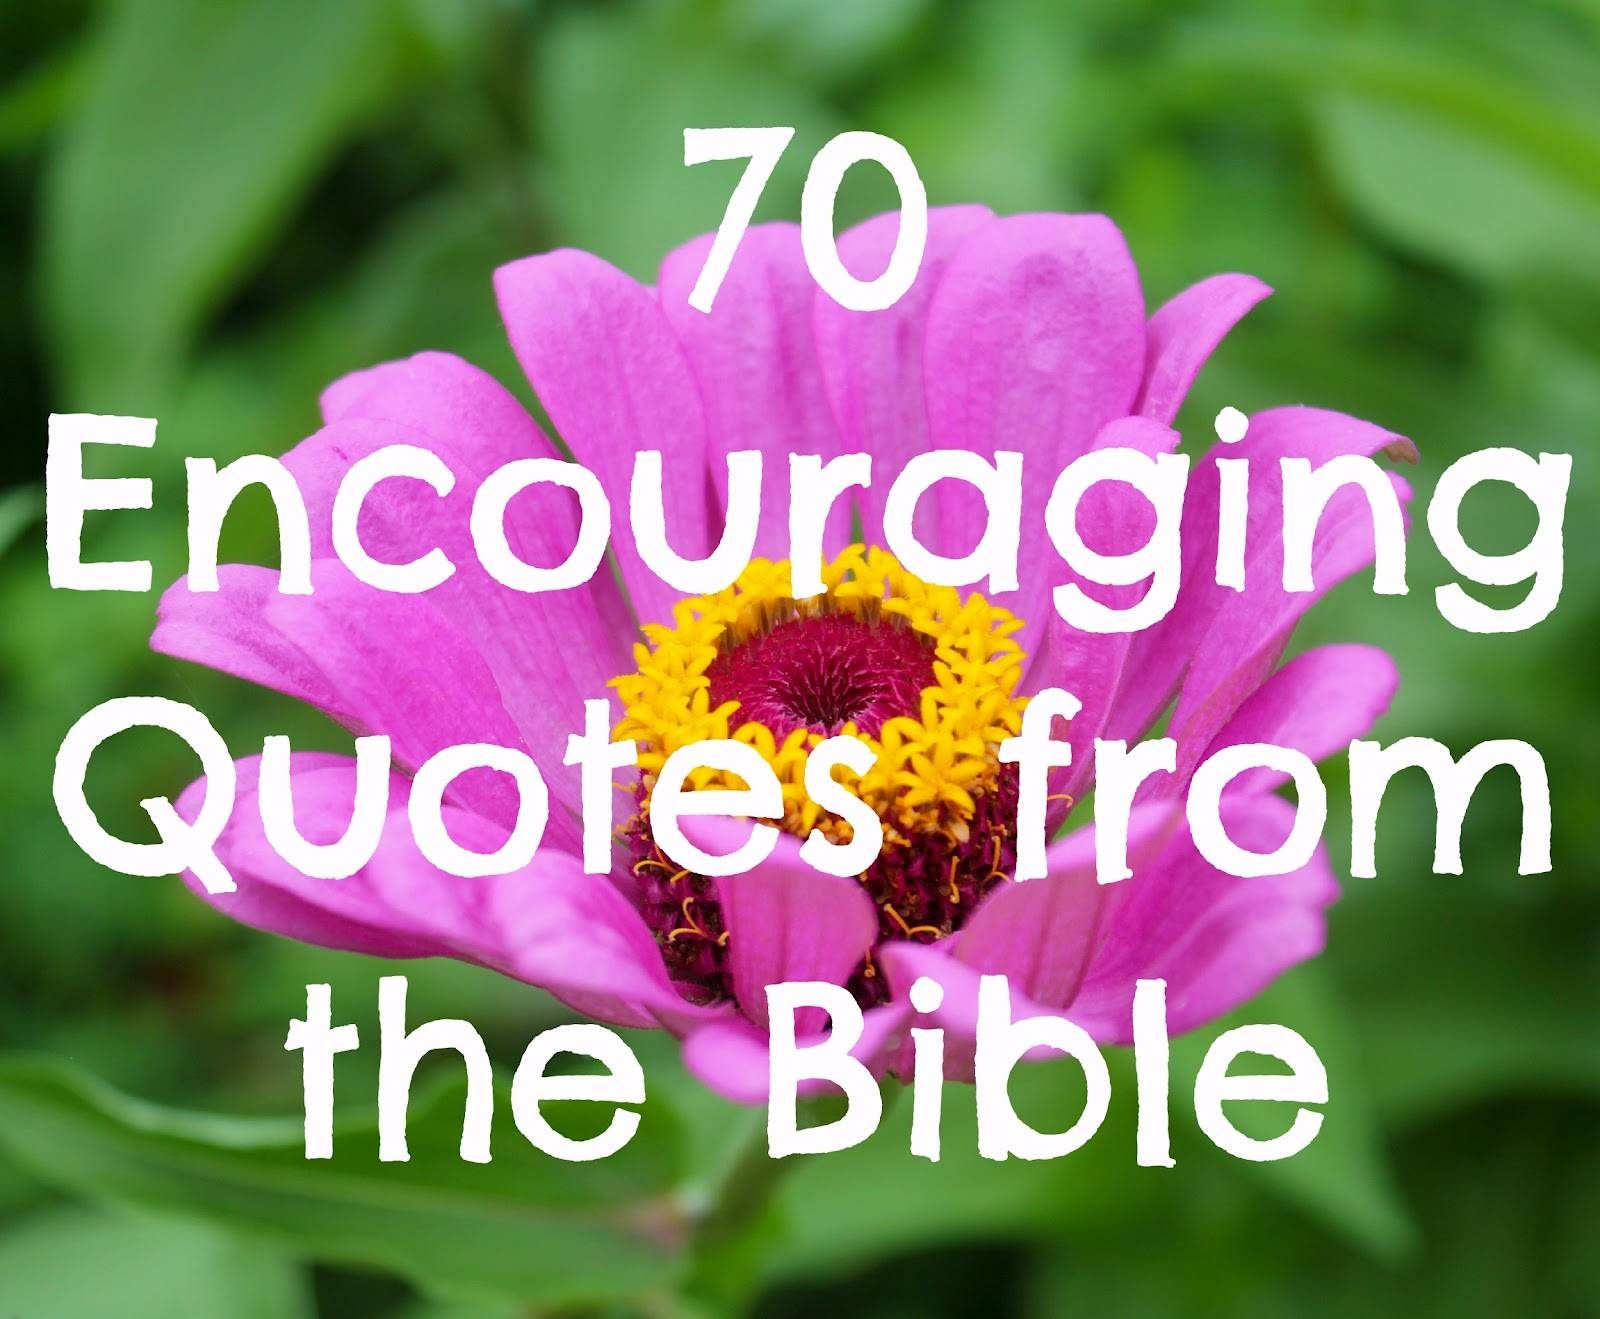 Bible Inspirational Quotes About Life Bible Quotes Pictures And Bible Quotes Images  35